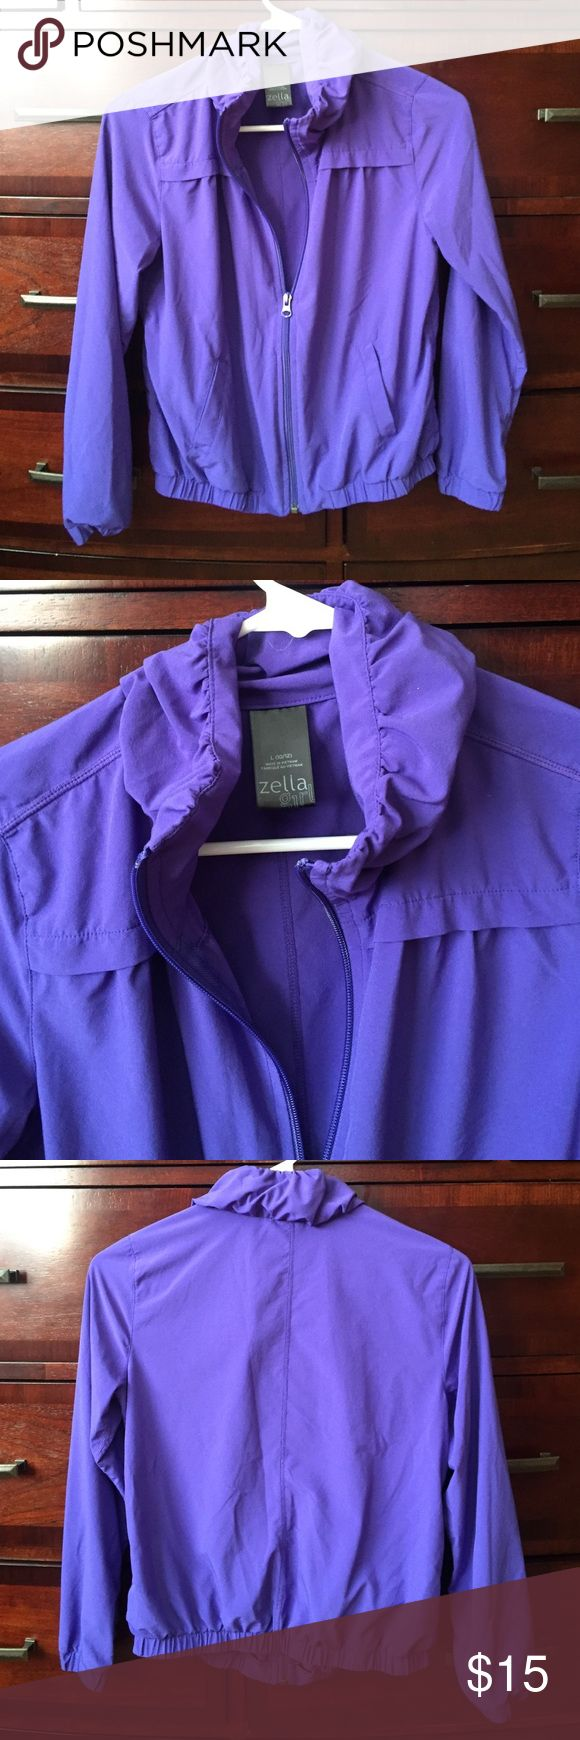 Zella girl zip up Great condition color purple zip up size 10/12 Zella Girl Jackets & Coats